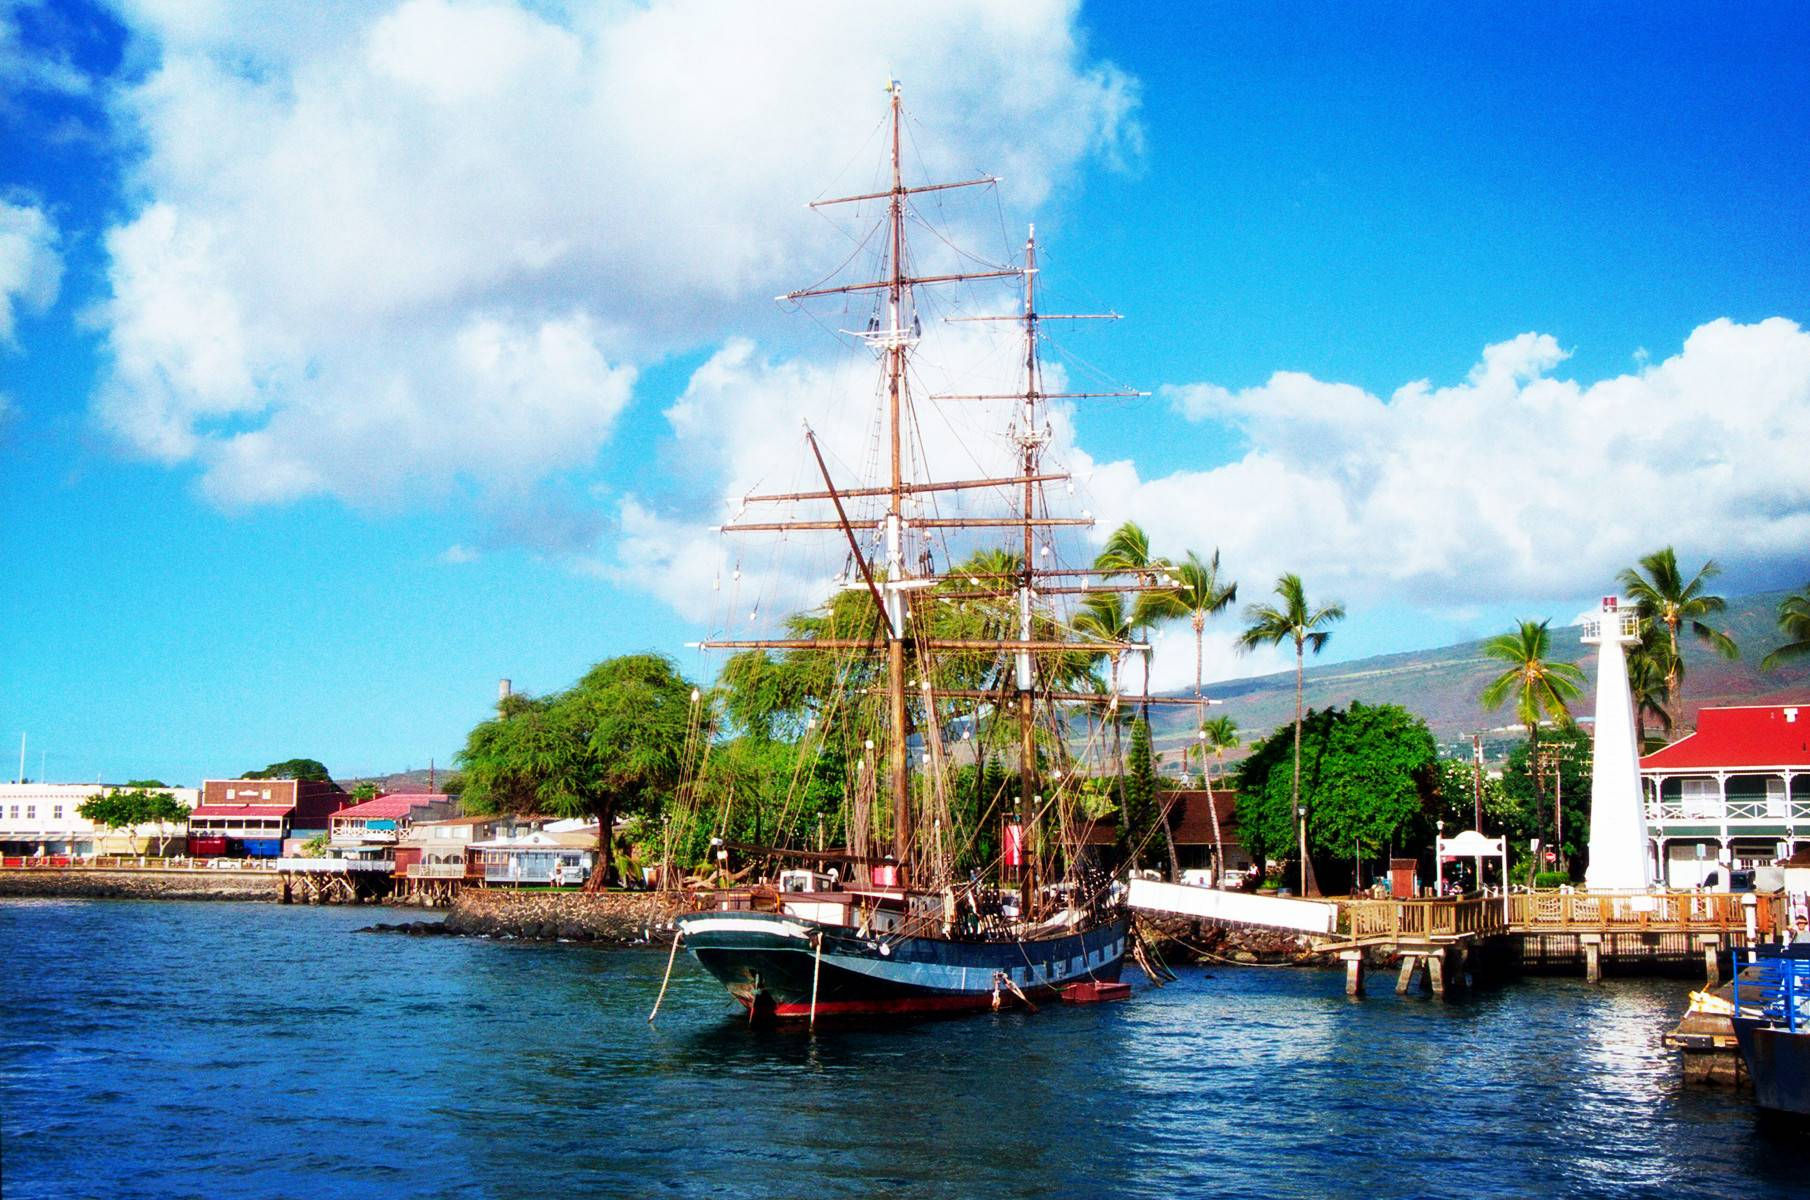 Day Trips To The Big Island From Honolulu